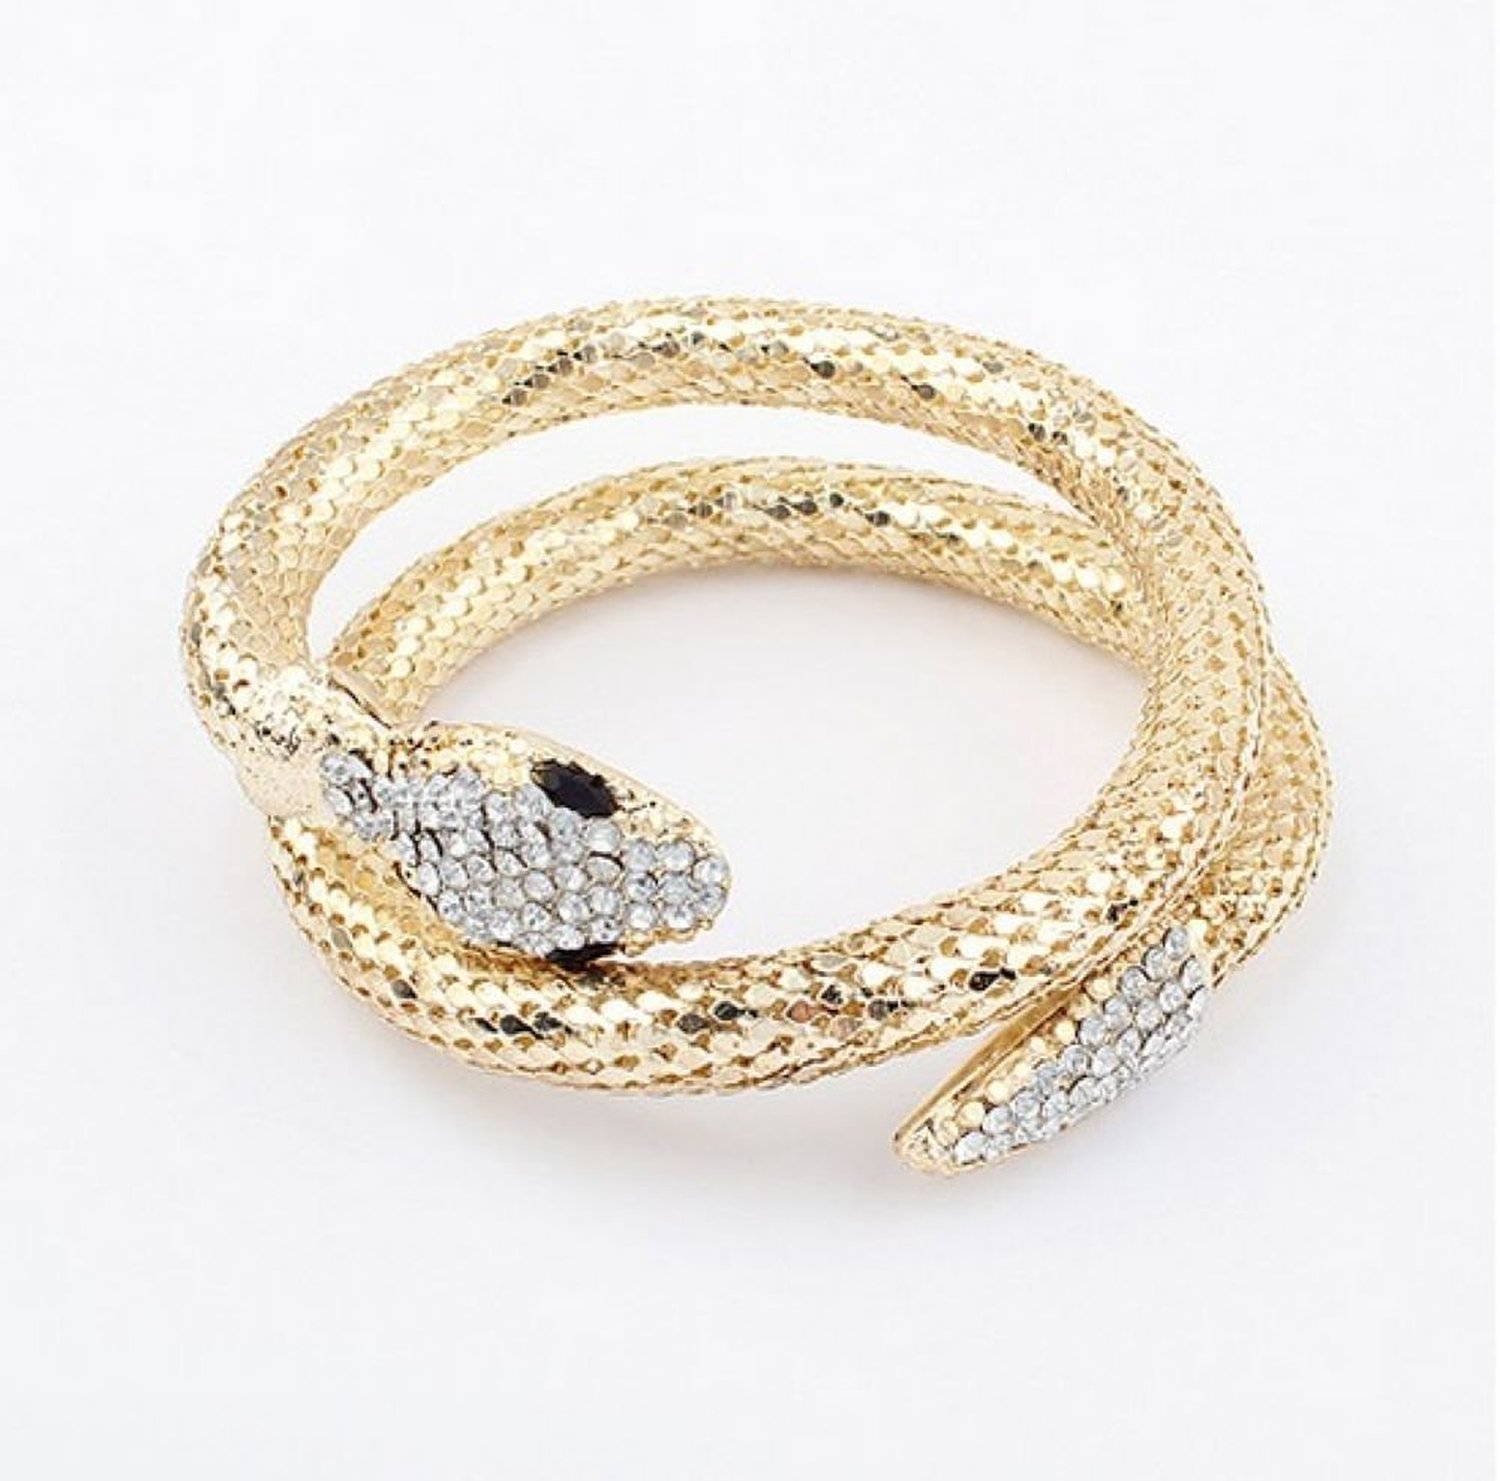 Amazon.com: wiipu crystal gold chunky curved stretch snake bangle bracelet (c2203): y shaped necklaces: jewelry